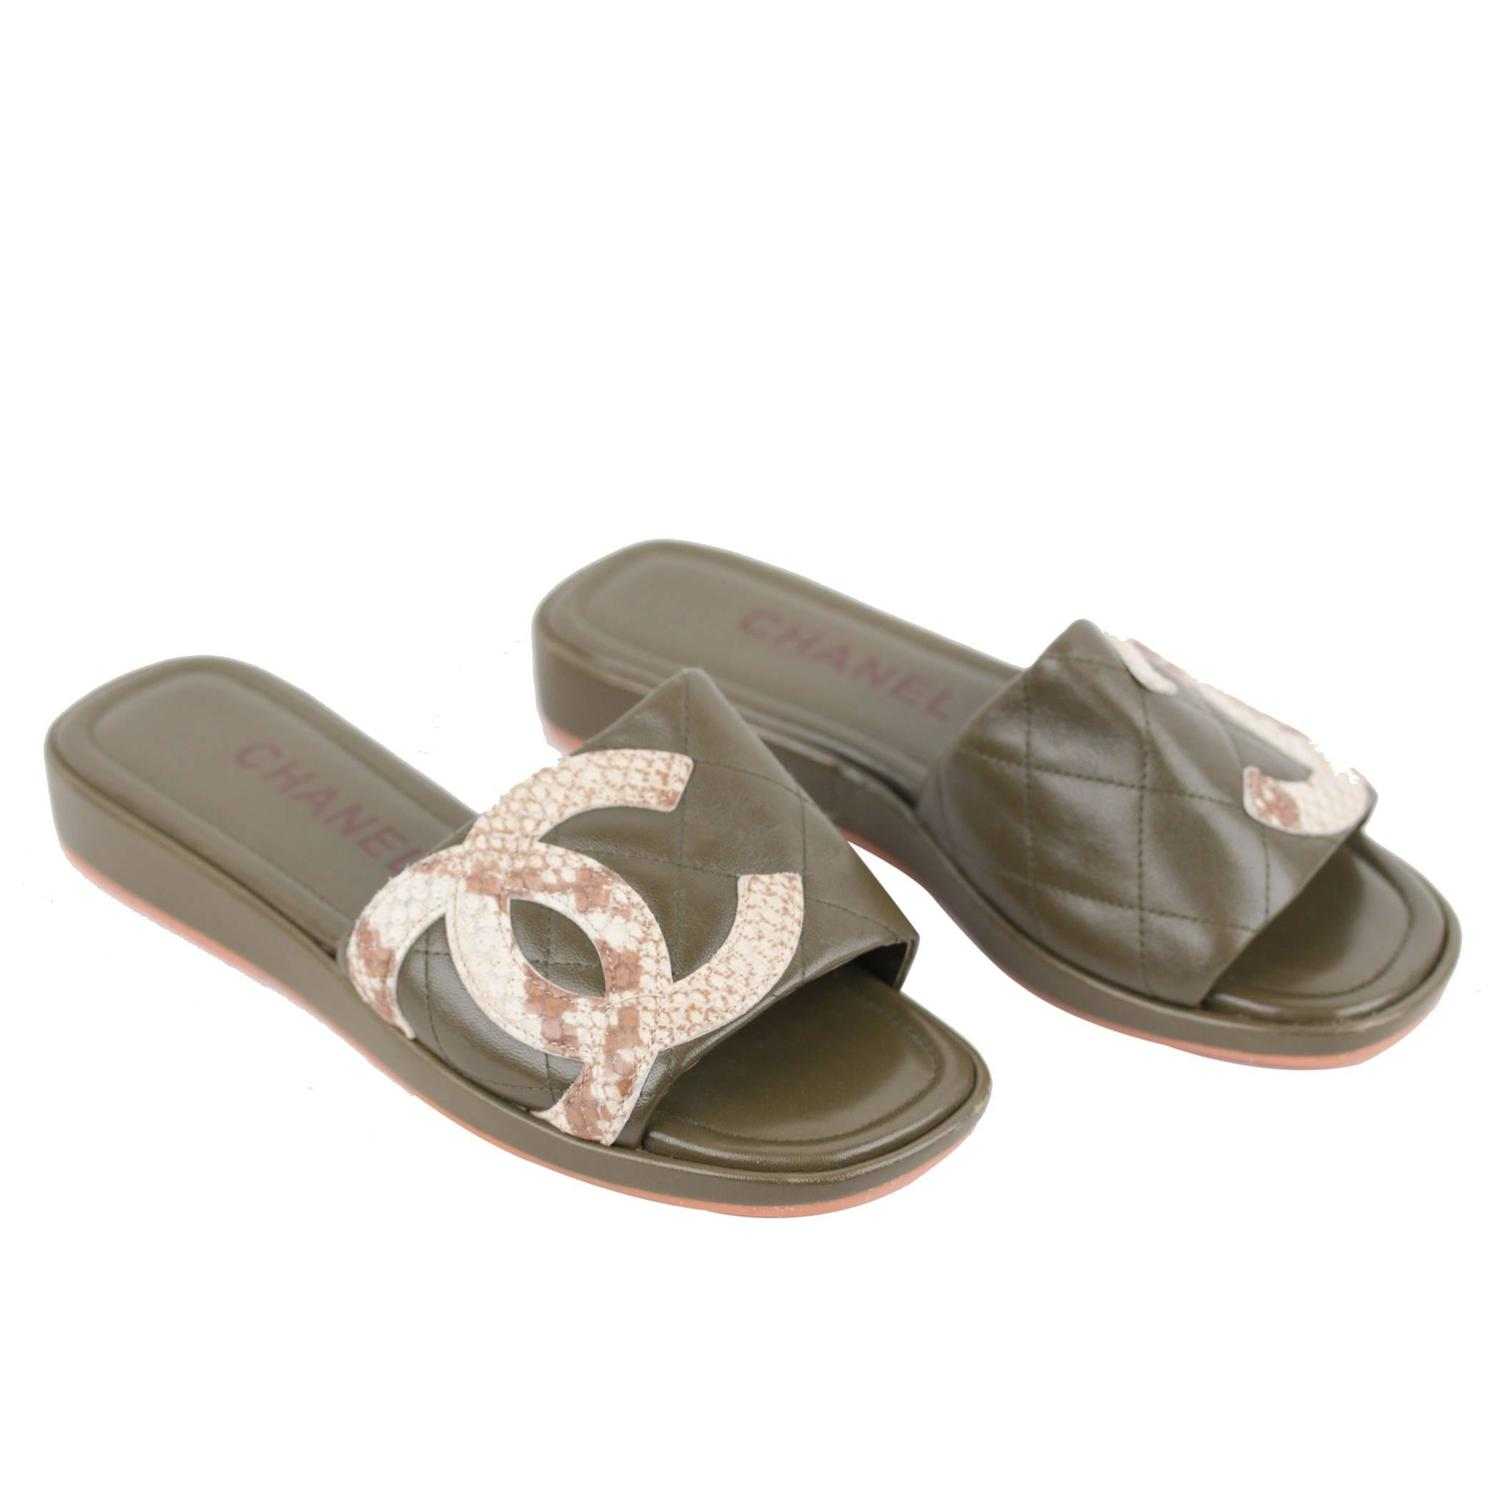 chanel shoes. chanel military green leather cambon slides flat shoes sandals cc logo 35 1/2 it at 1stdibs chanel